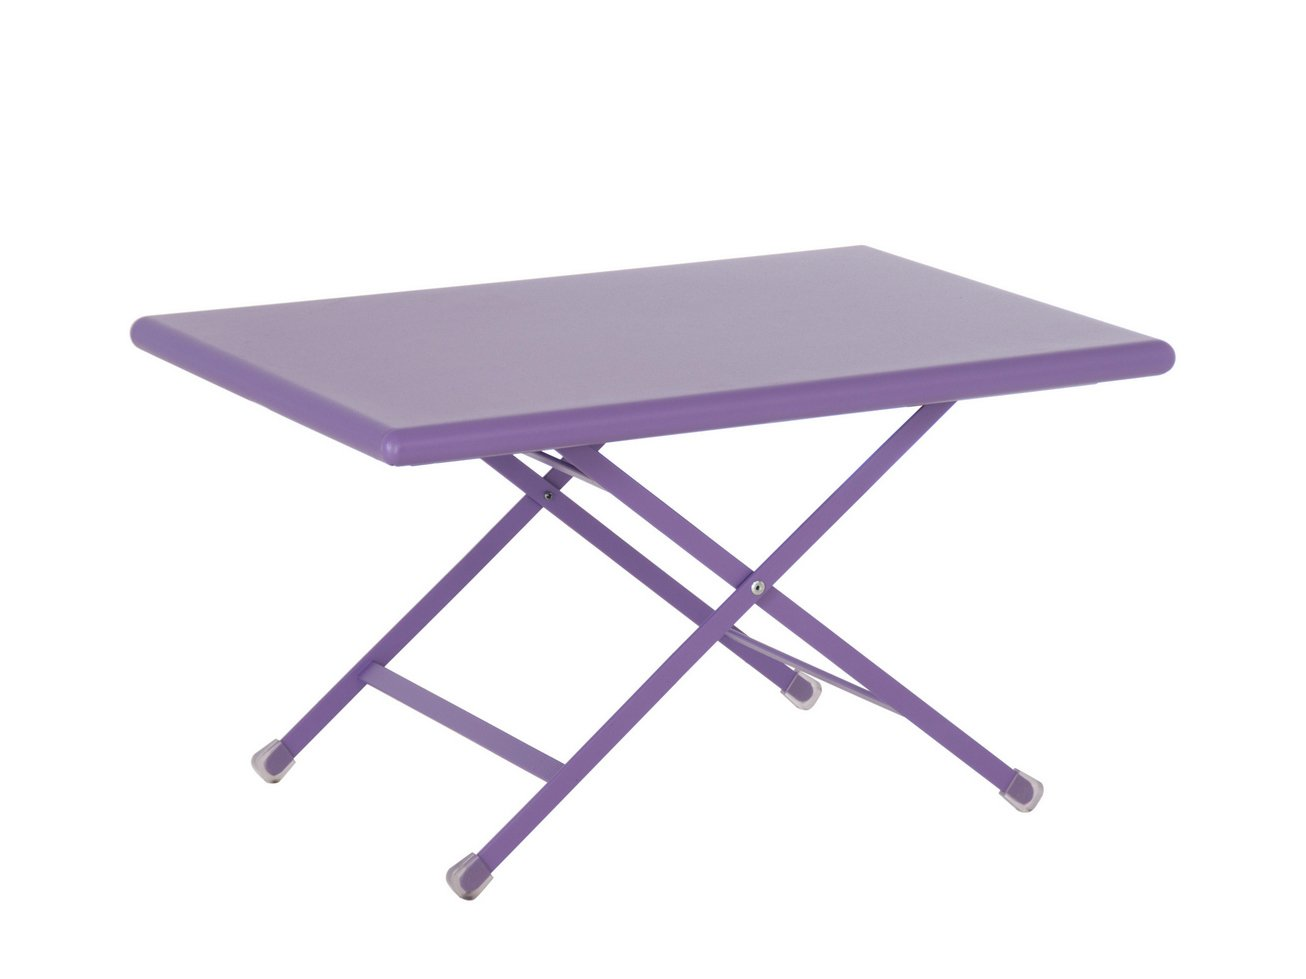 Table basse jardin metal pliante - Table basse pliante ...